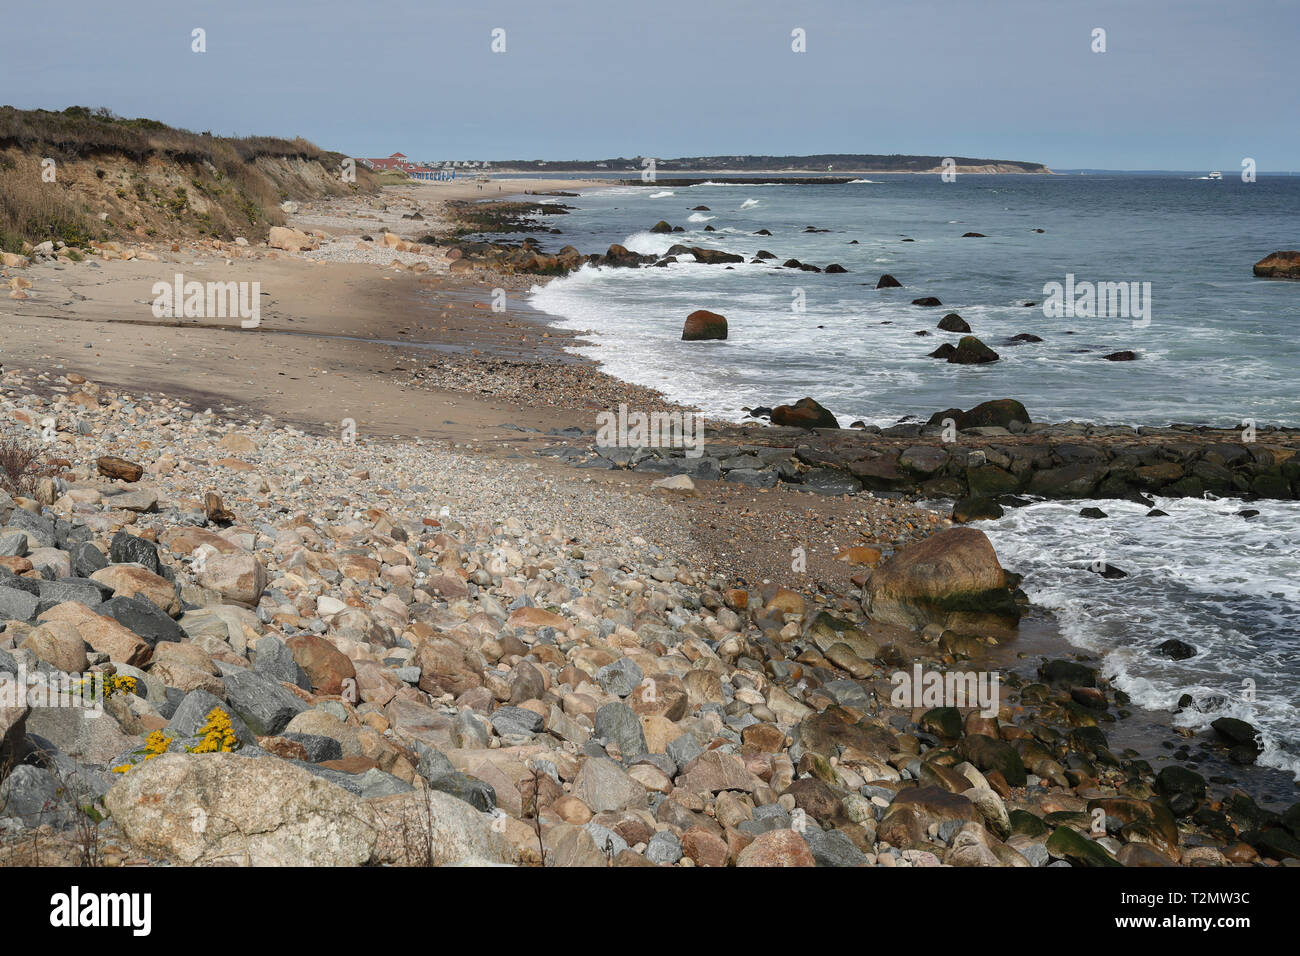 Green Hill Cove, Block Island, Rhode Island, USA. Off the southeastern section or region of New Shoreham, RI sits Block Island.It's a vacation region. - Stock Image